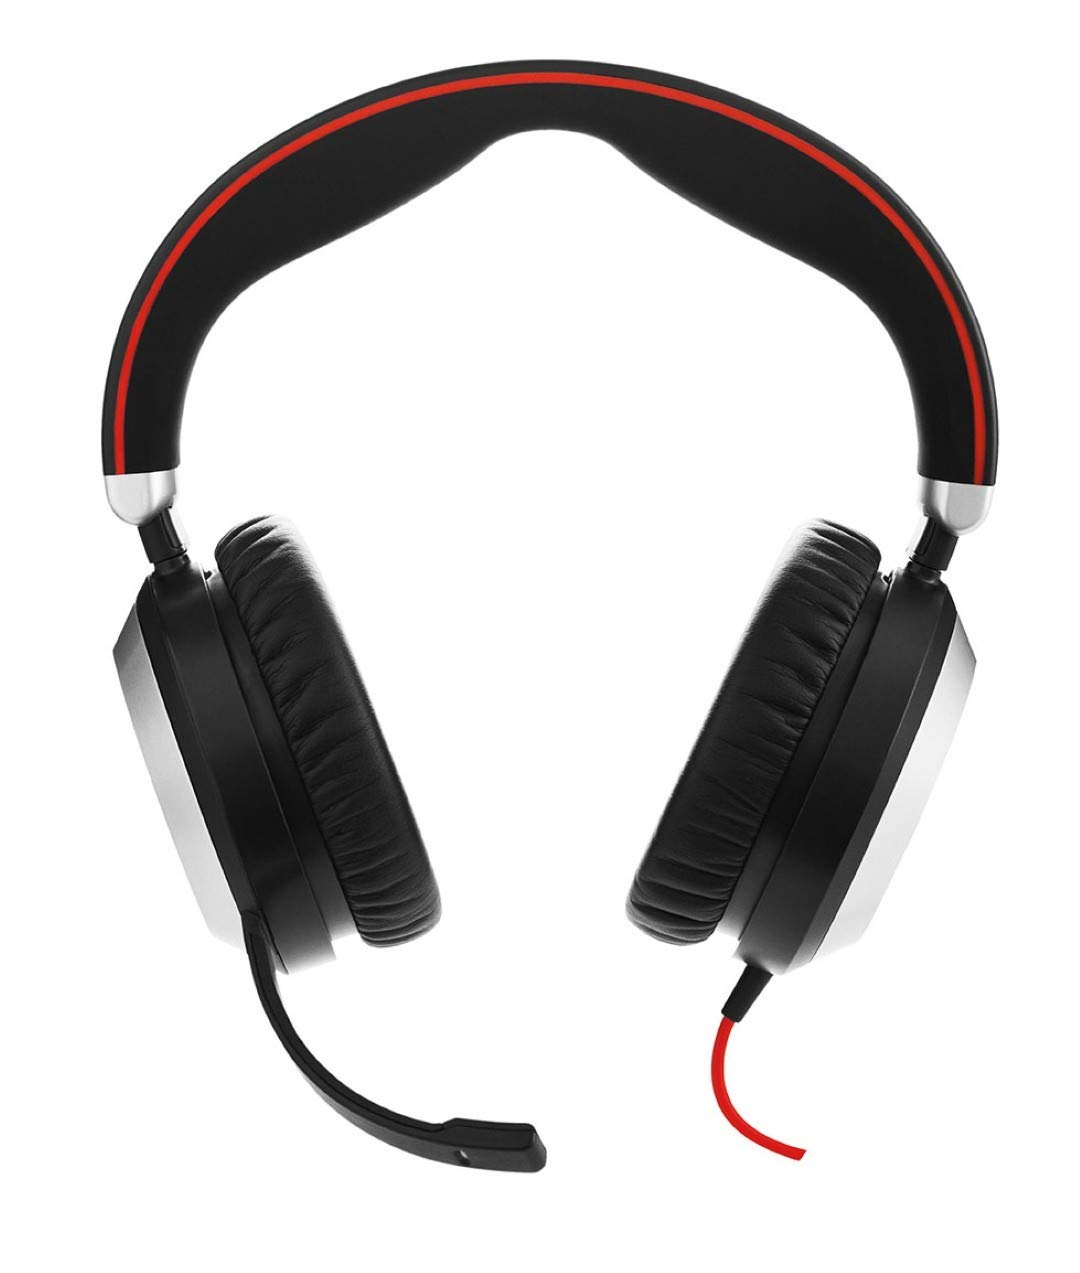 Jabra Evolve 80 - Professional Stereo Noise Cancelling Wired Headset/Music Headphones - MS